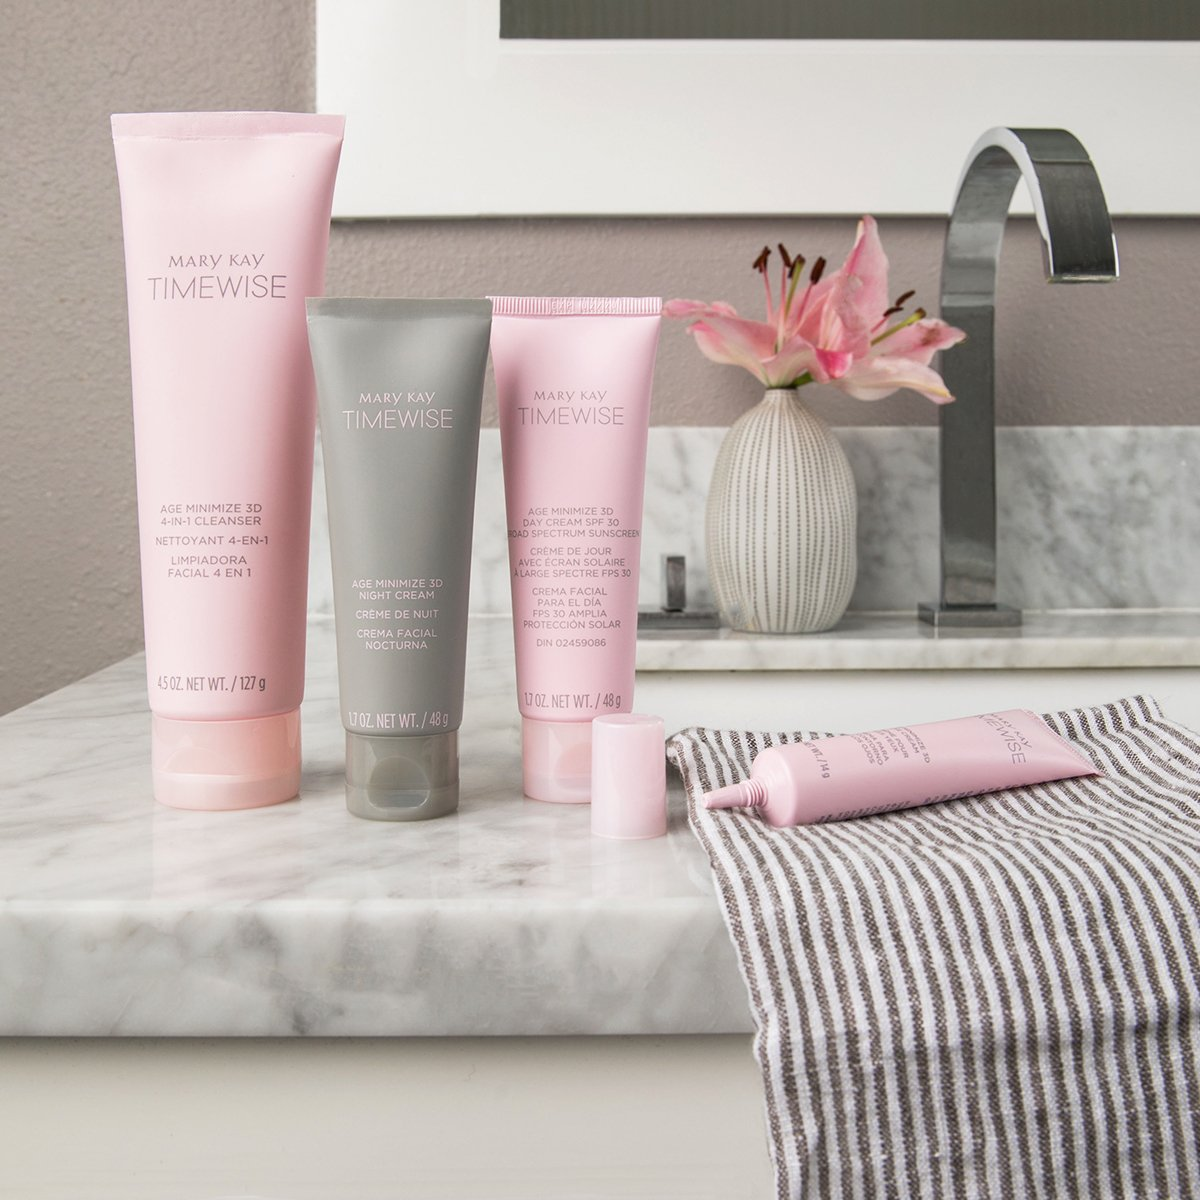 Good night, sleep right!  The TimeWise® Miracle Set 3D™ features multiple age-defying benefits in one product. #TimeWise3D #MaryKay  http:// bit.ly/2k7crug  &nbsp;  <br>http://pic.twitter.com/wdH4pEjalW